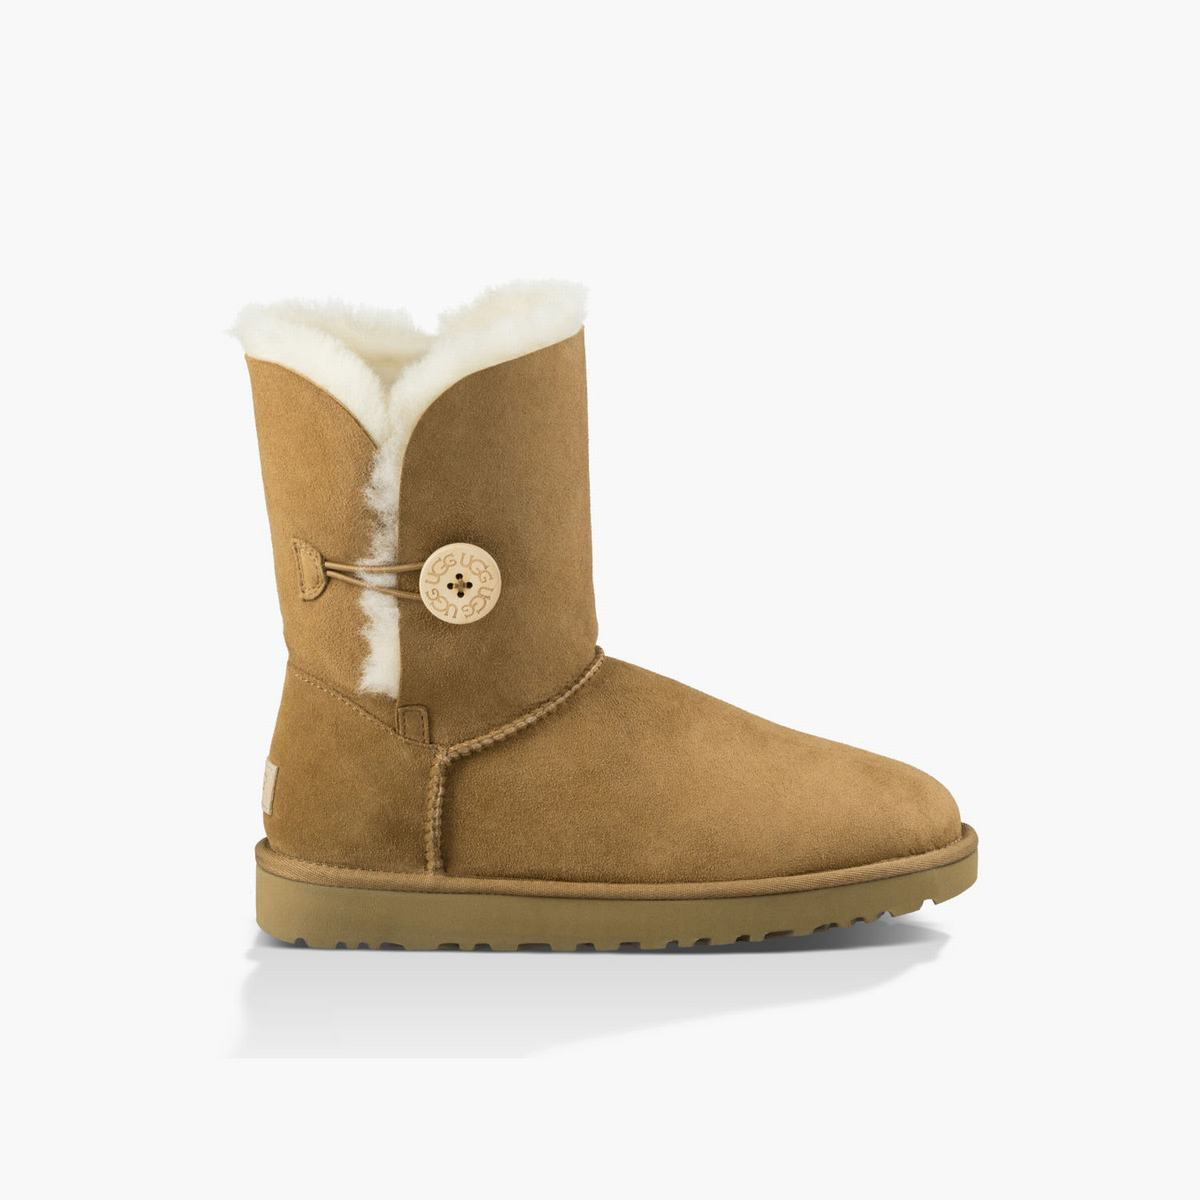 Womens UGG Bailey Button II Boot Brown Boots, 984BQJKE